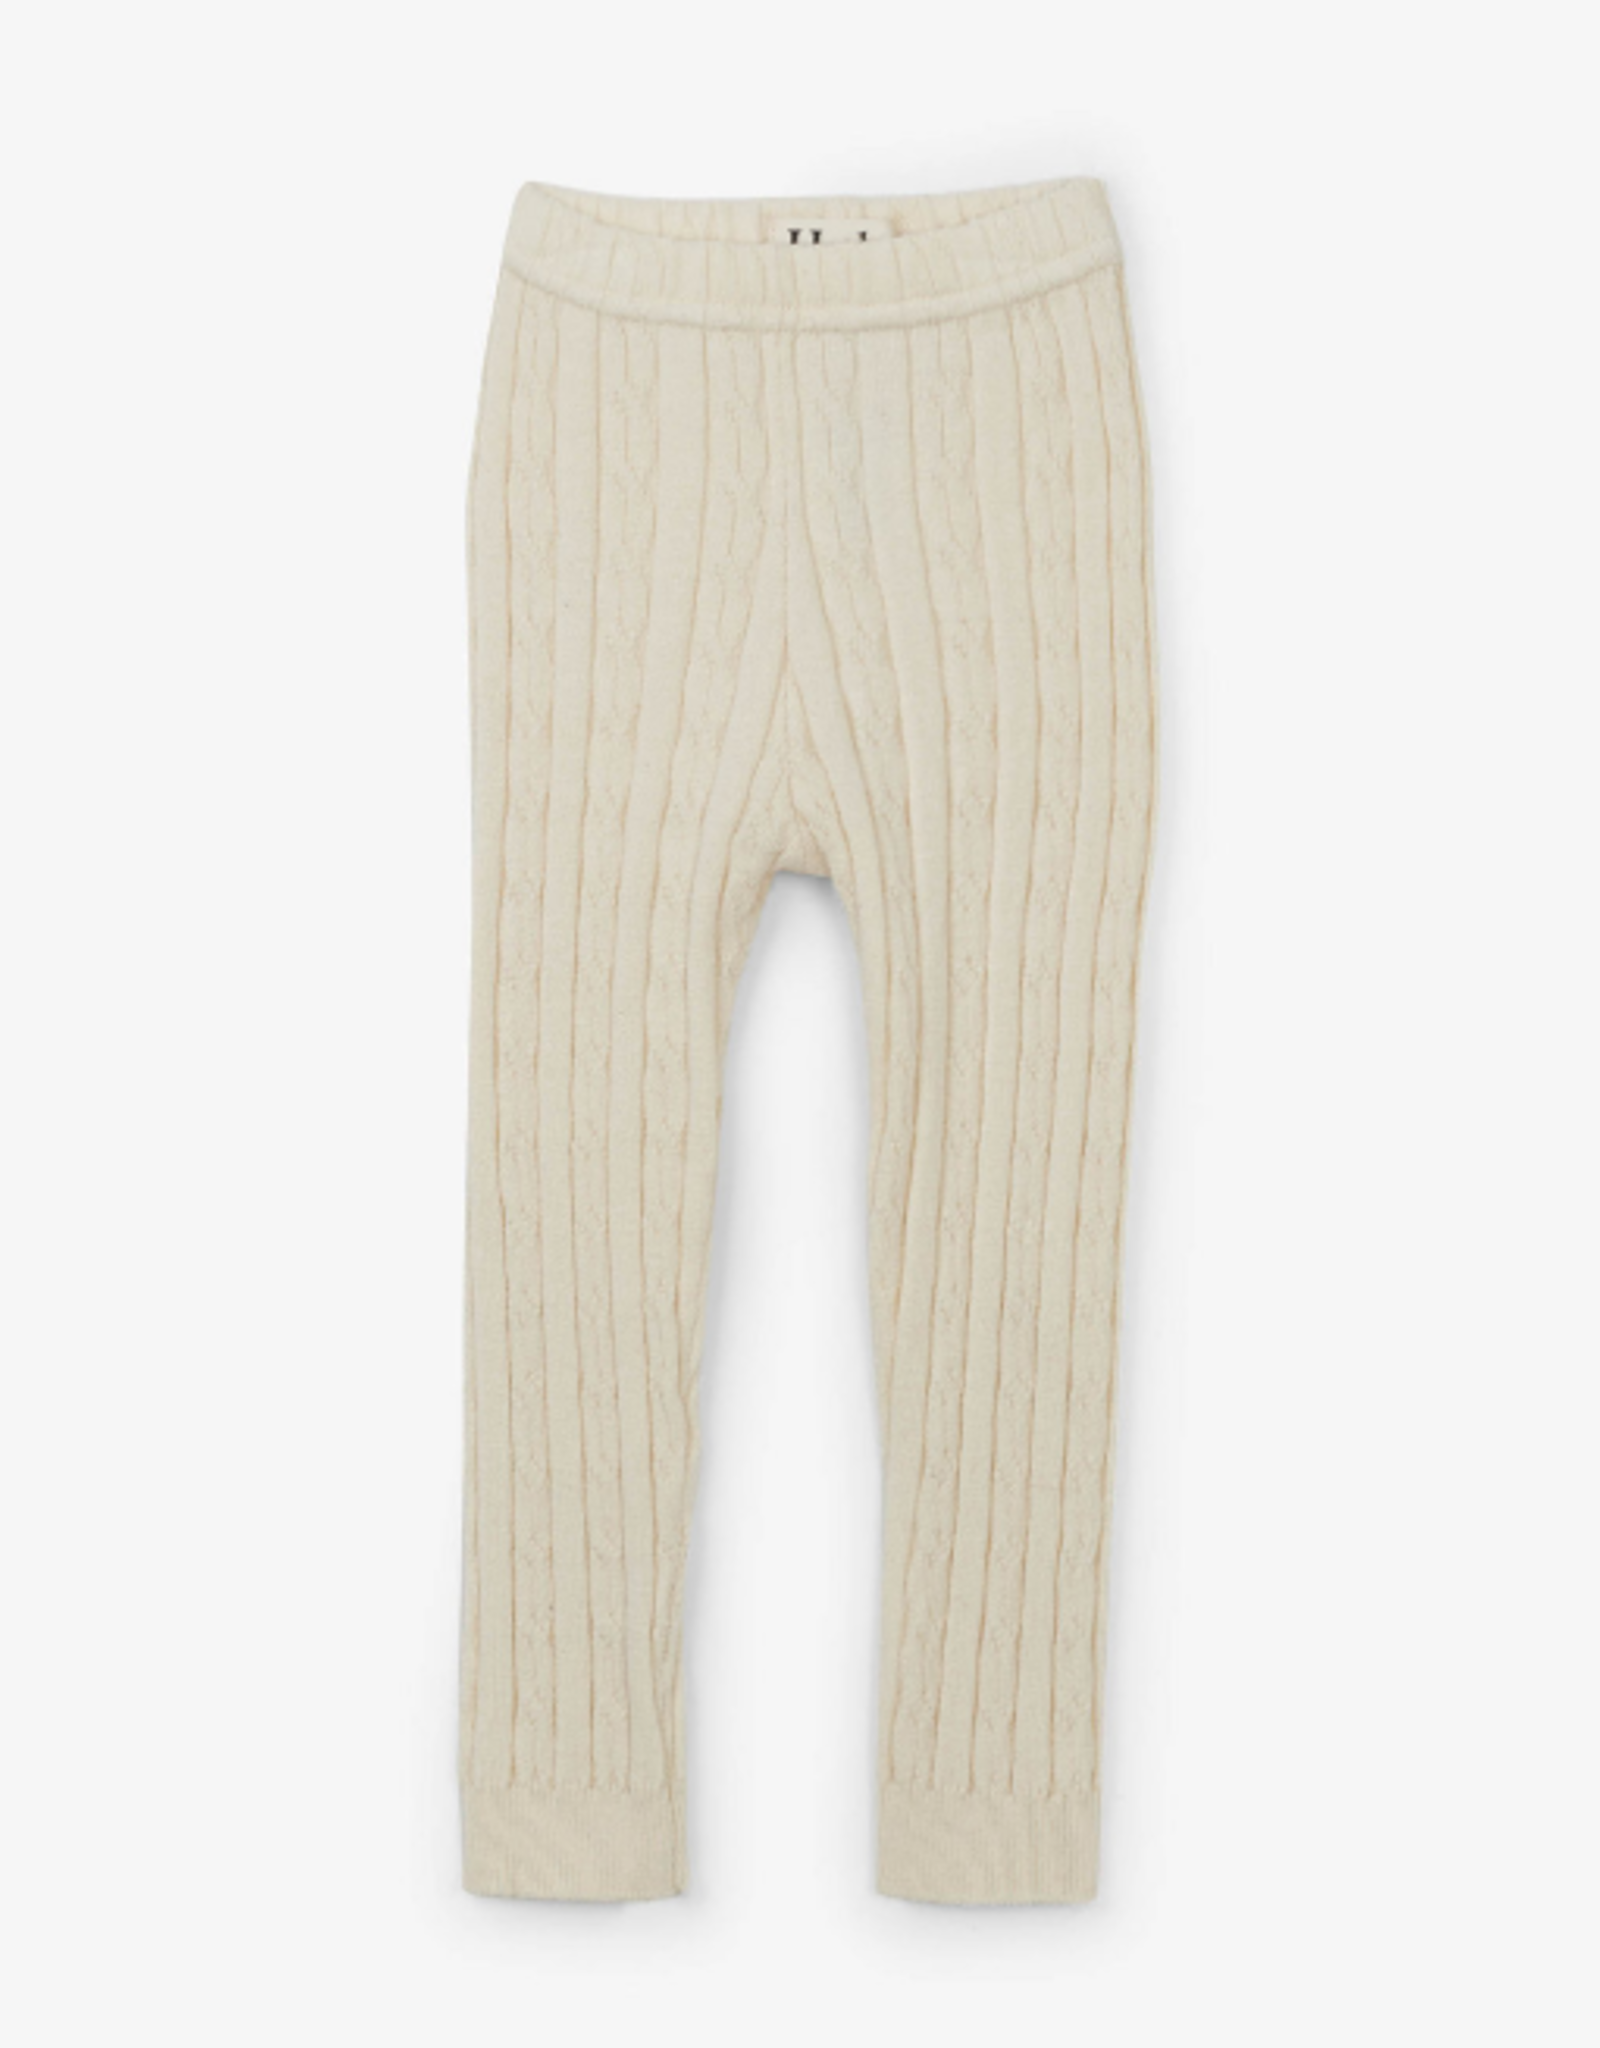 hatley Cream Cable Knit Leggings